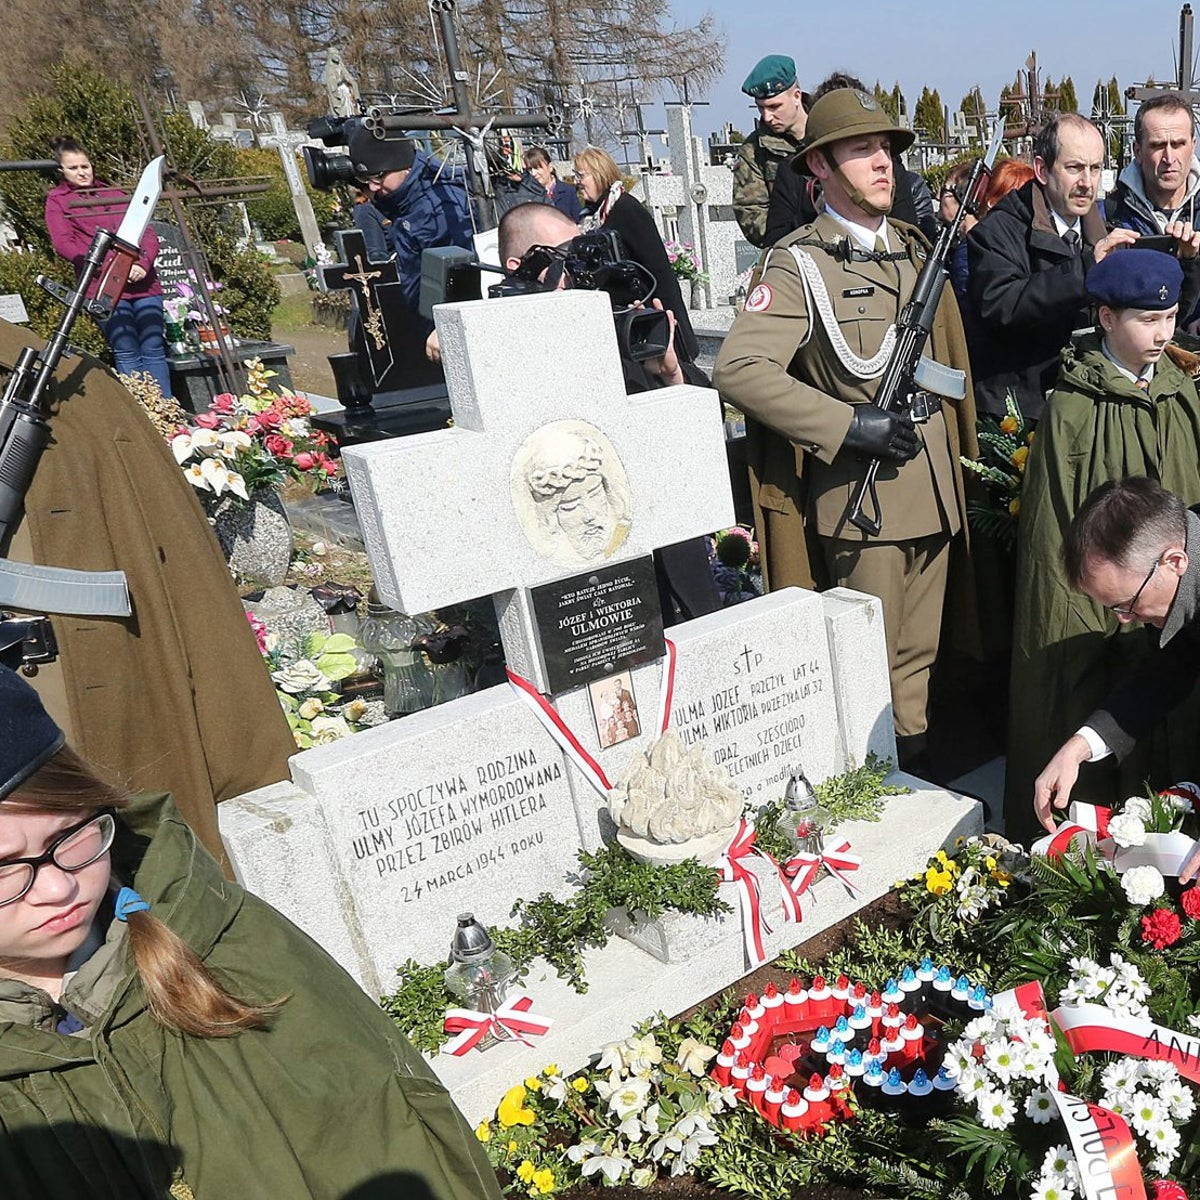 Soldiers stand guard at the flower-covered grave of the Ulma family, a couple with six small children, who were killed by the Germans in 1944 for sheltering eight Jews, who were also killed with the family, during remembrance ceremonies at the cemetery in Markowa, Poland, Thursday, March 17, 2016.